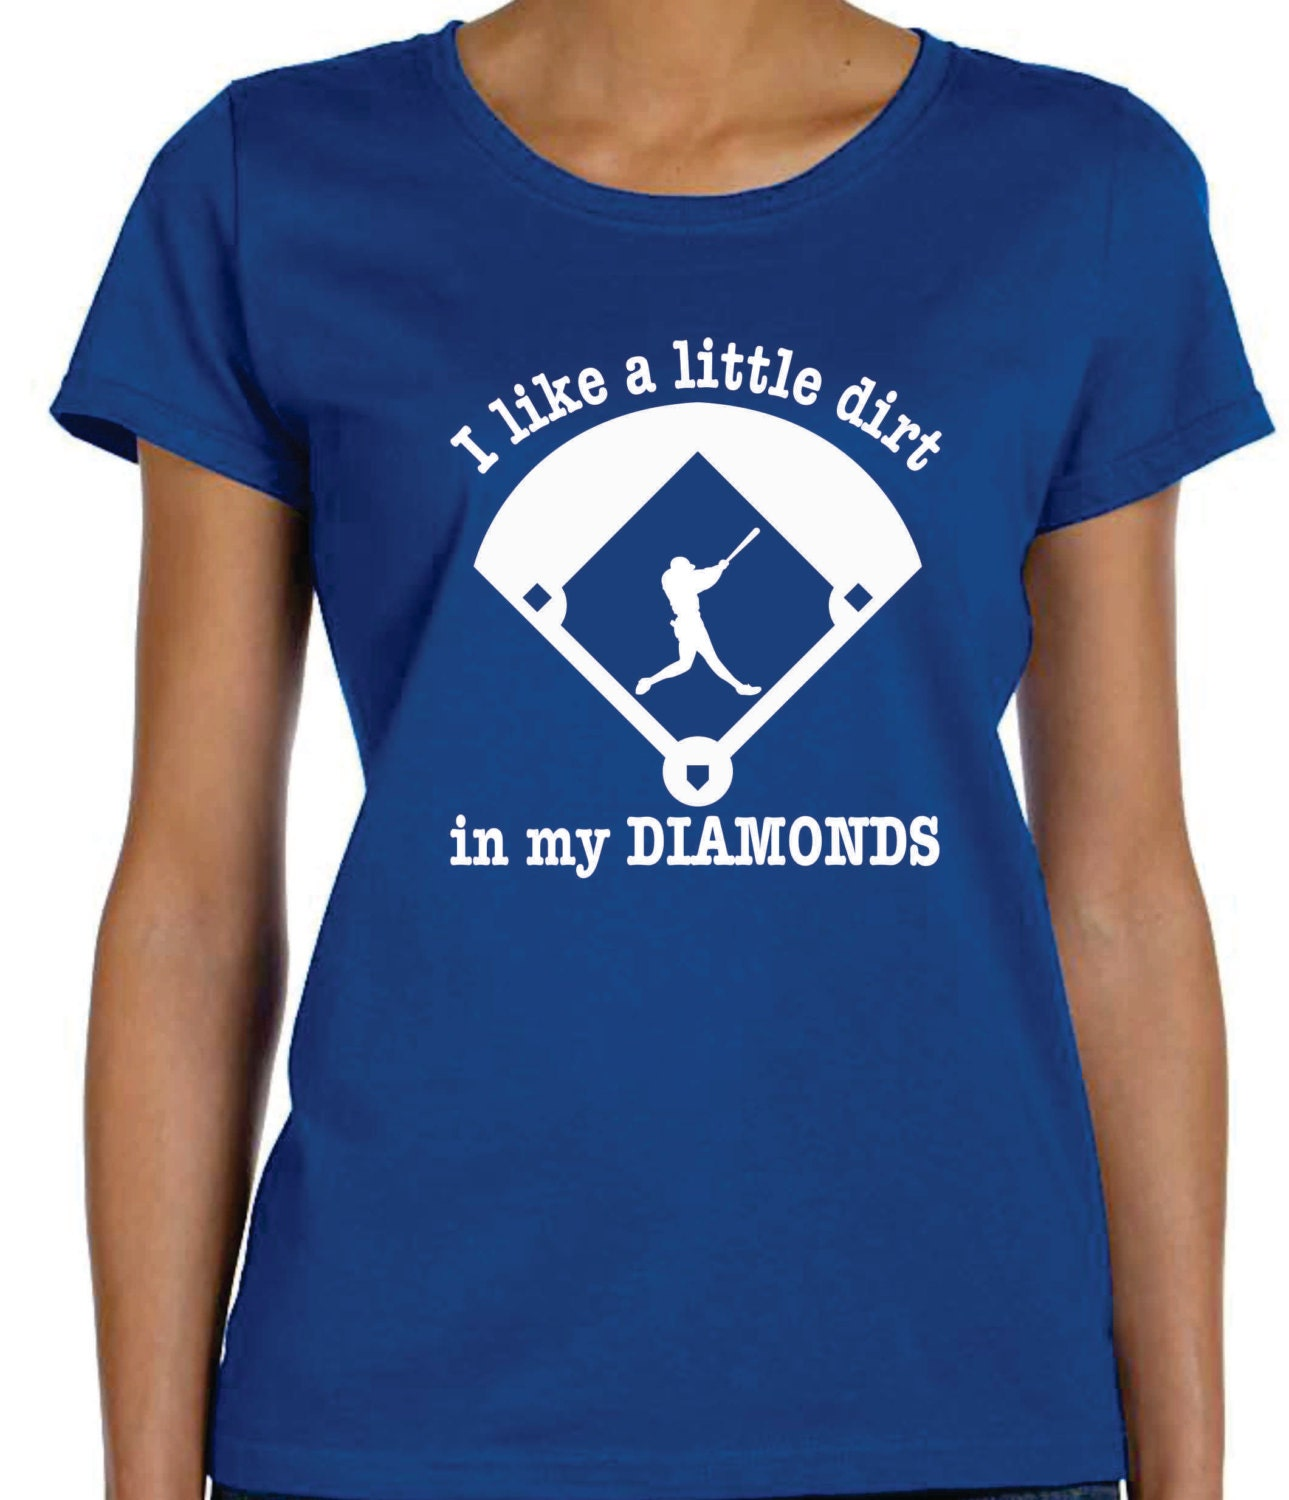 Baseball T Shirt Designs Ideas Classic Baseball T Shirt Design